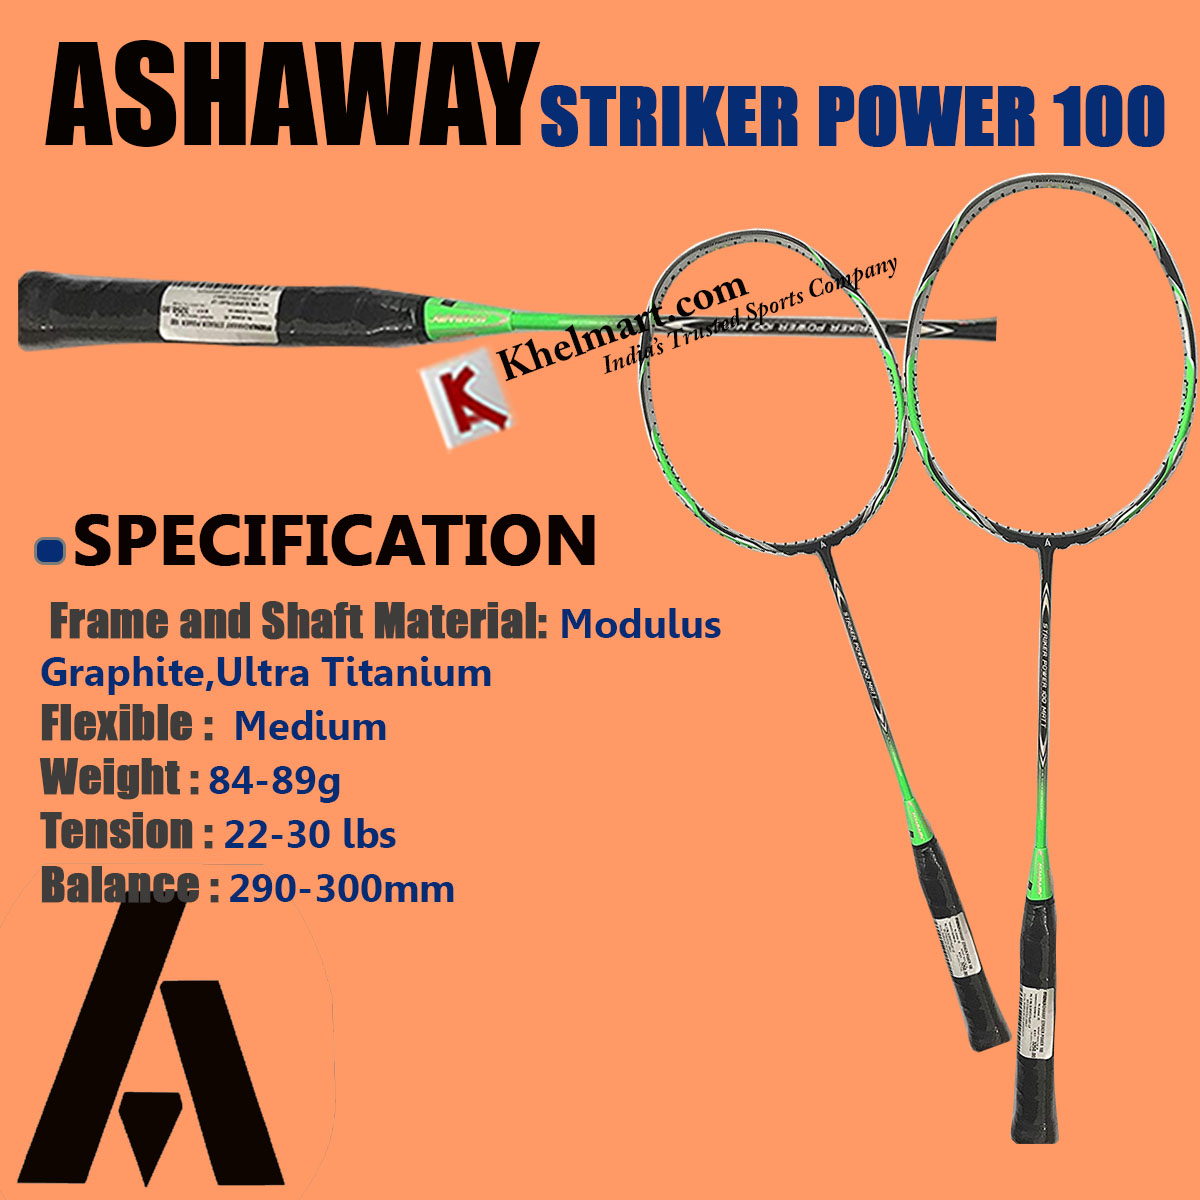 ASHAWAY_STRIKER_POWER_100_BADMINTON_RACKET_8.jpg